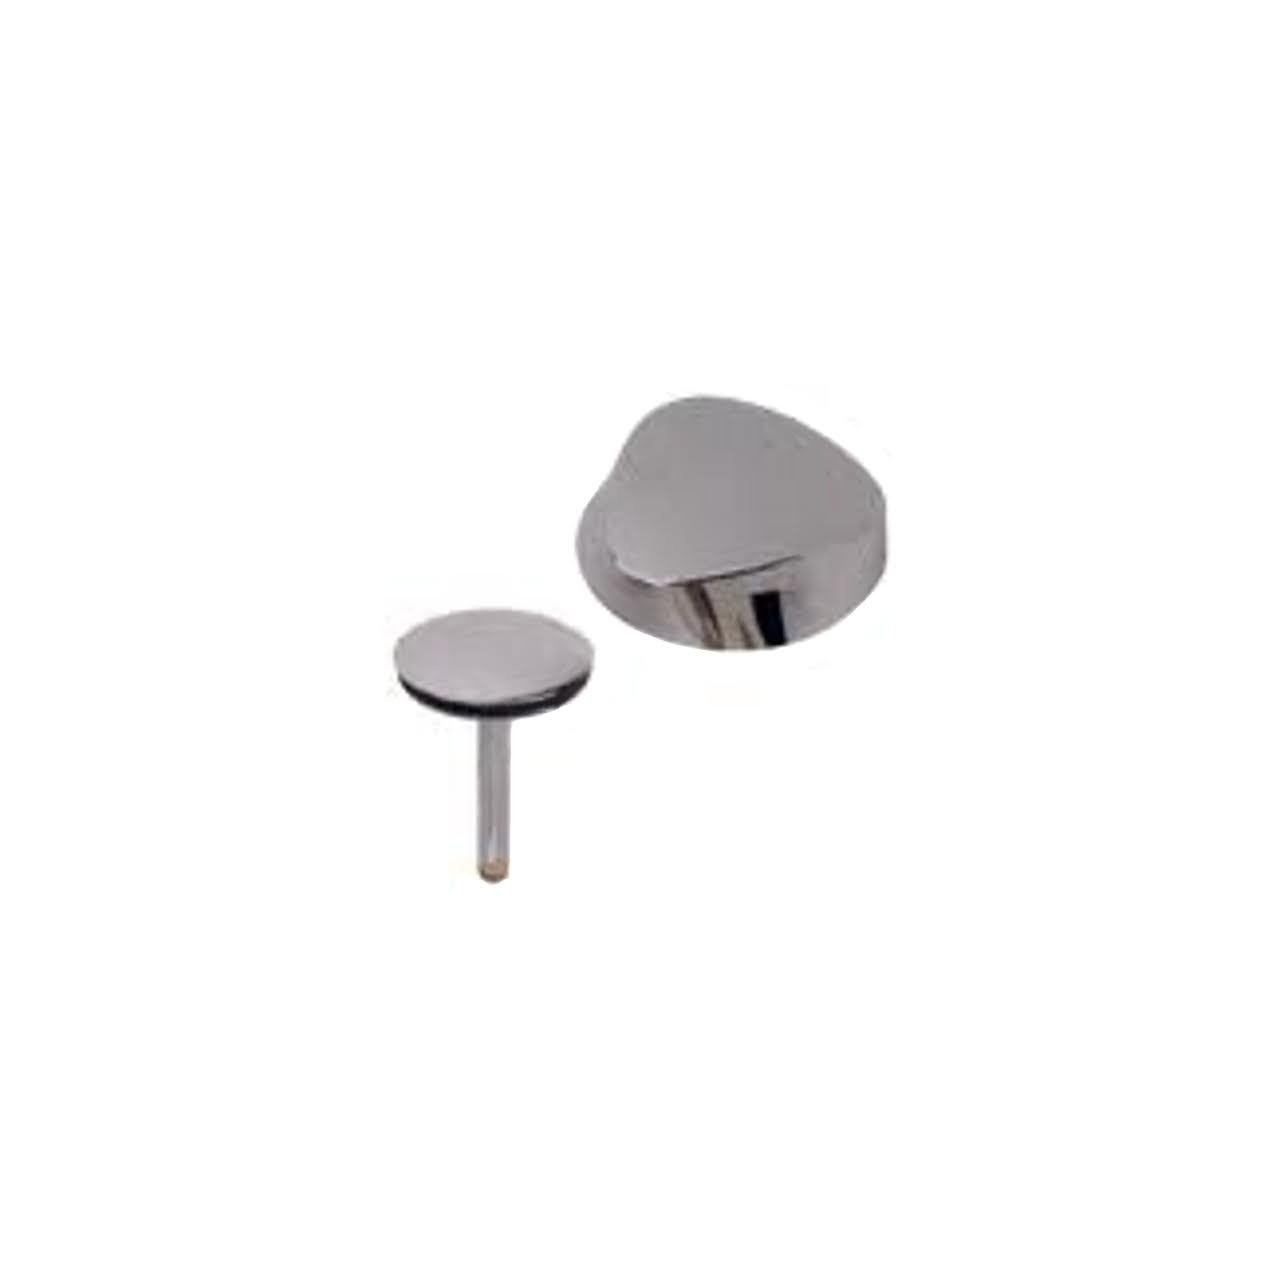 Geberit 151.551.IB.1 Traditional Metal TurnControl Trim Kit ForeverShine Polished Nickel